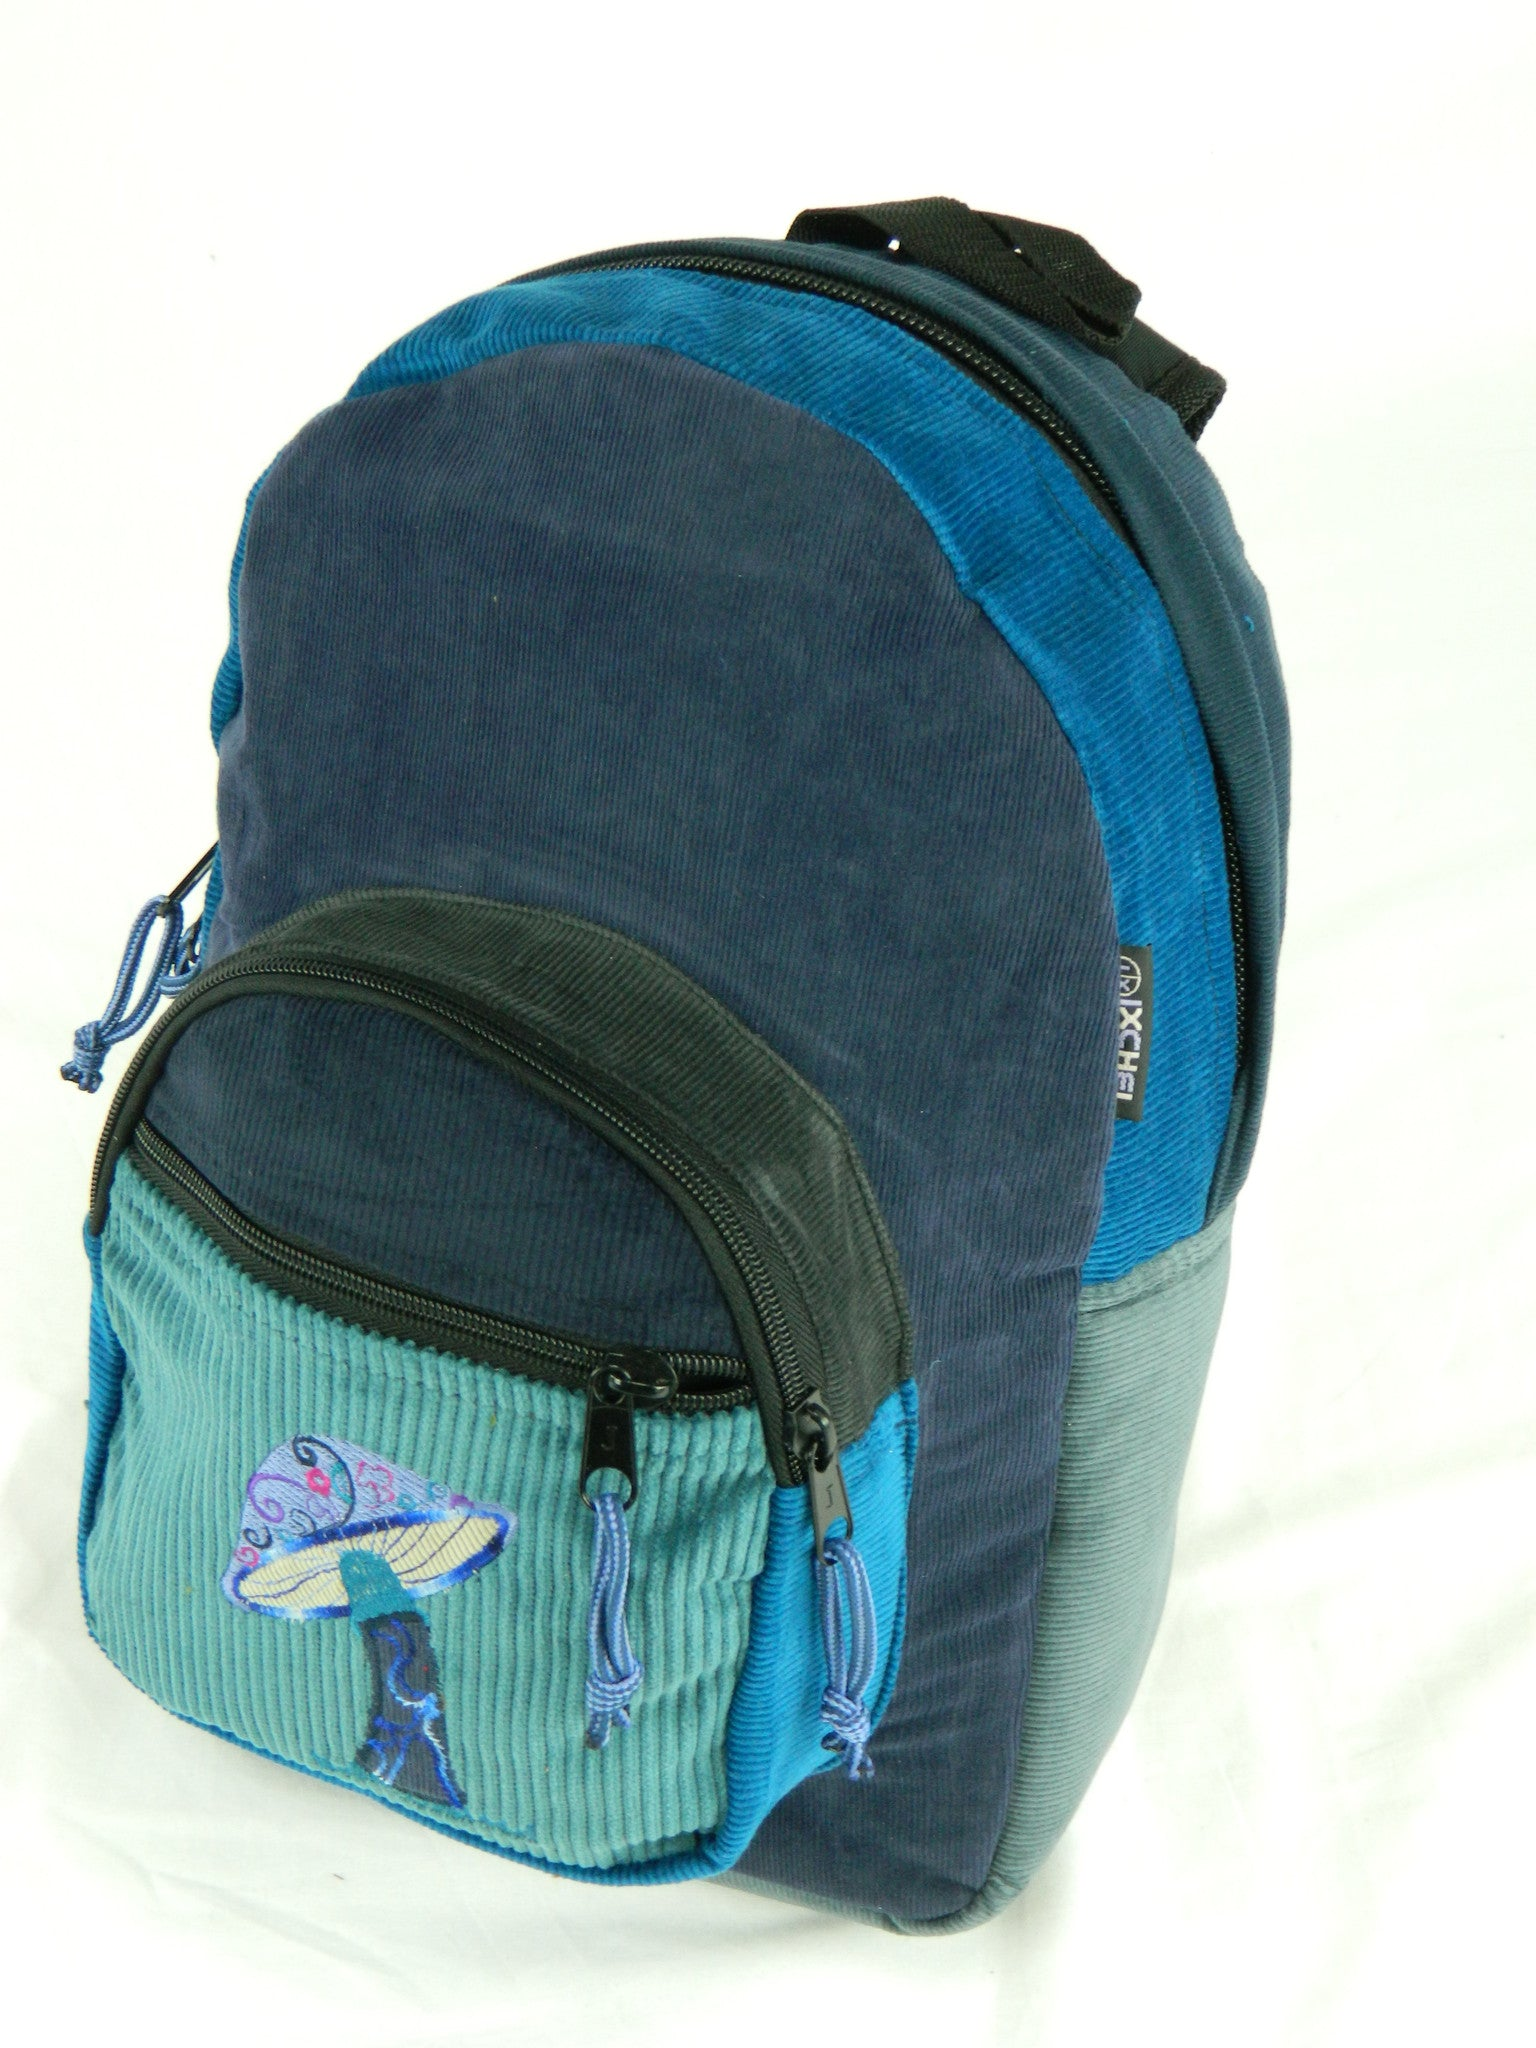 Corduroy patch backpack mushroom embroidery medum blue